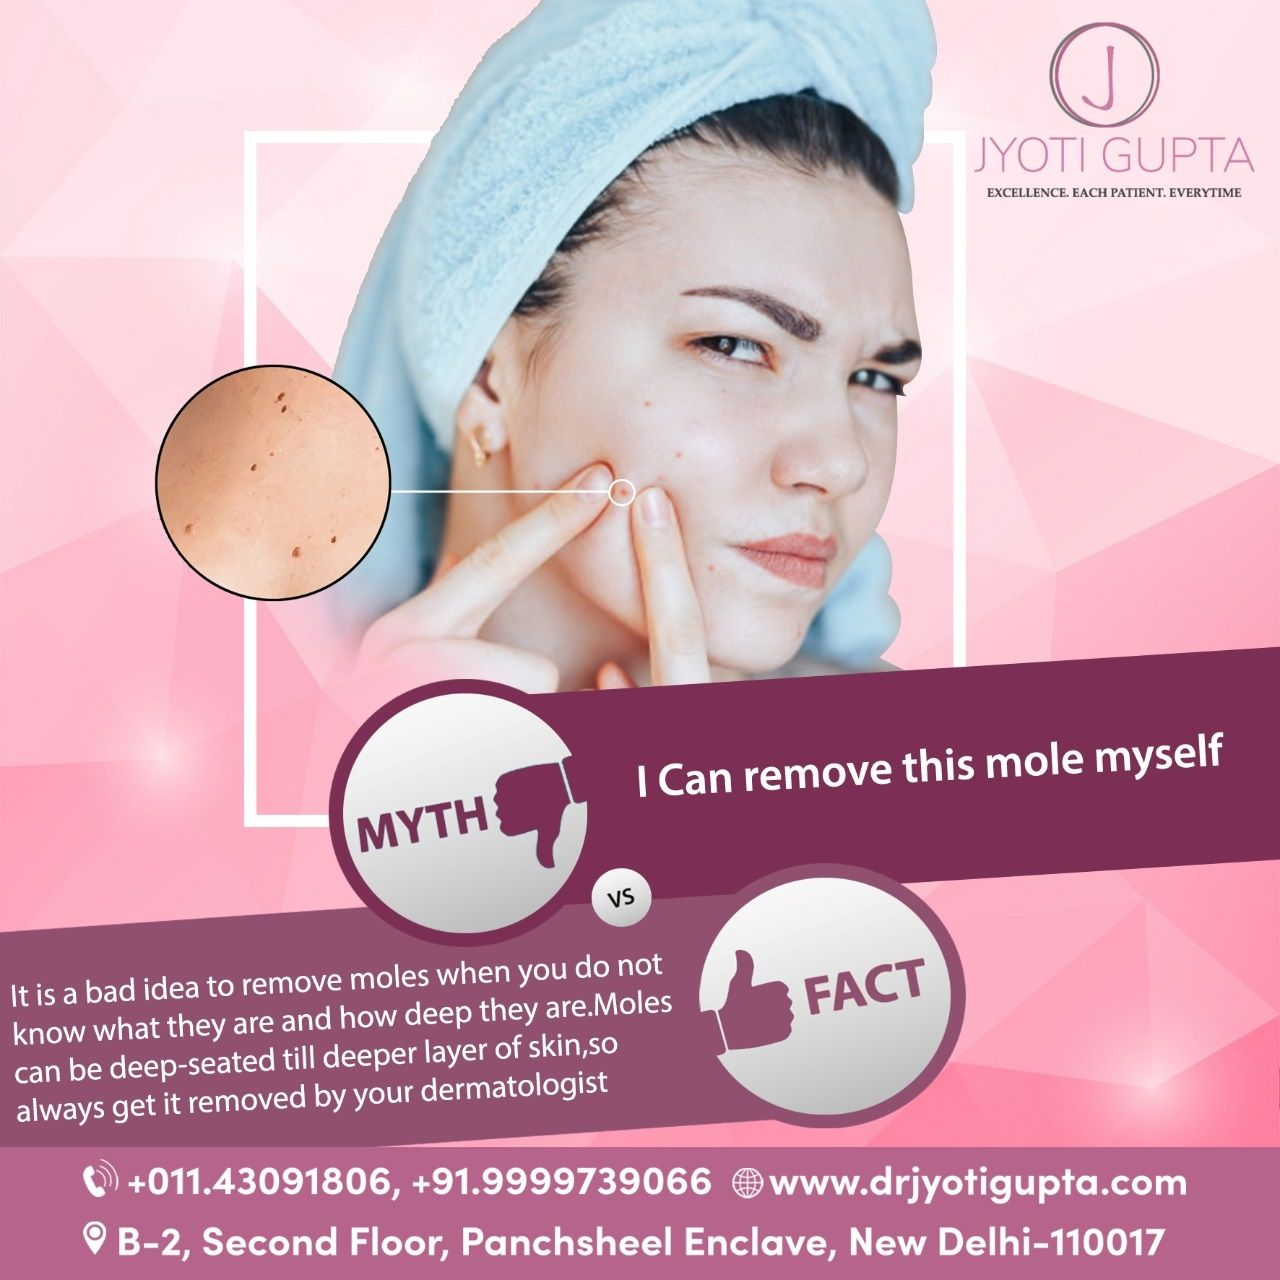 Take Control Of Your Wrinkles And Skincare Https Bit Ly 2mlpq2i At Clinic Dermatech North India S Most Awarded Skinc Skin Clinic Skin Treatments Skin Care